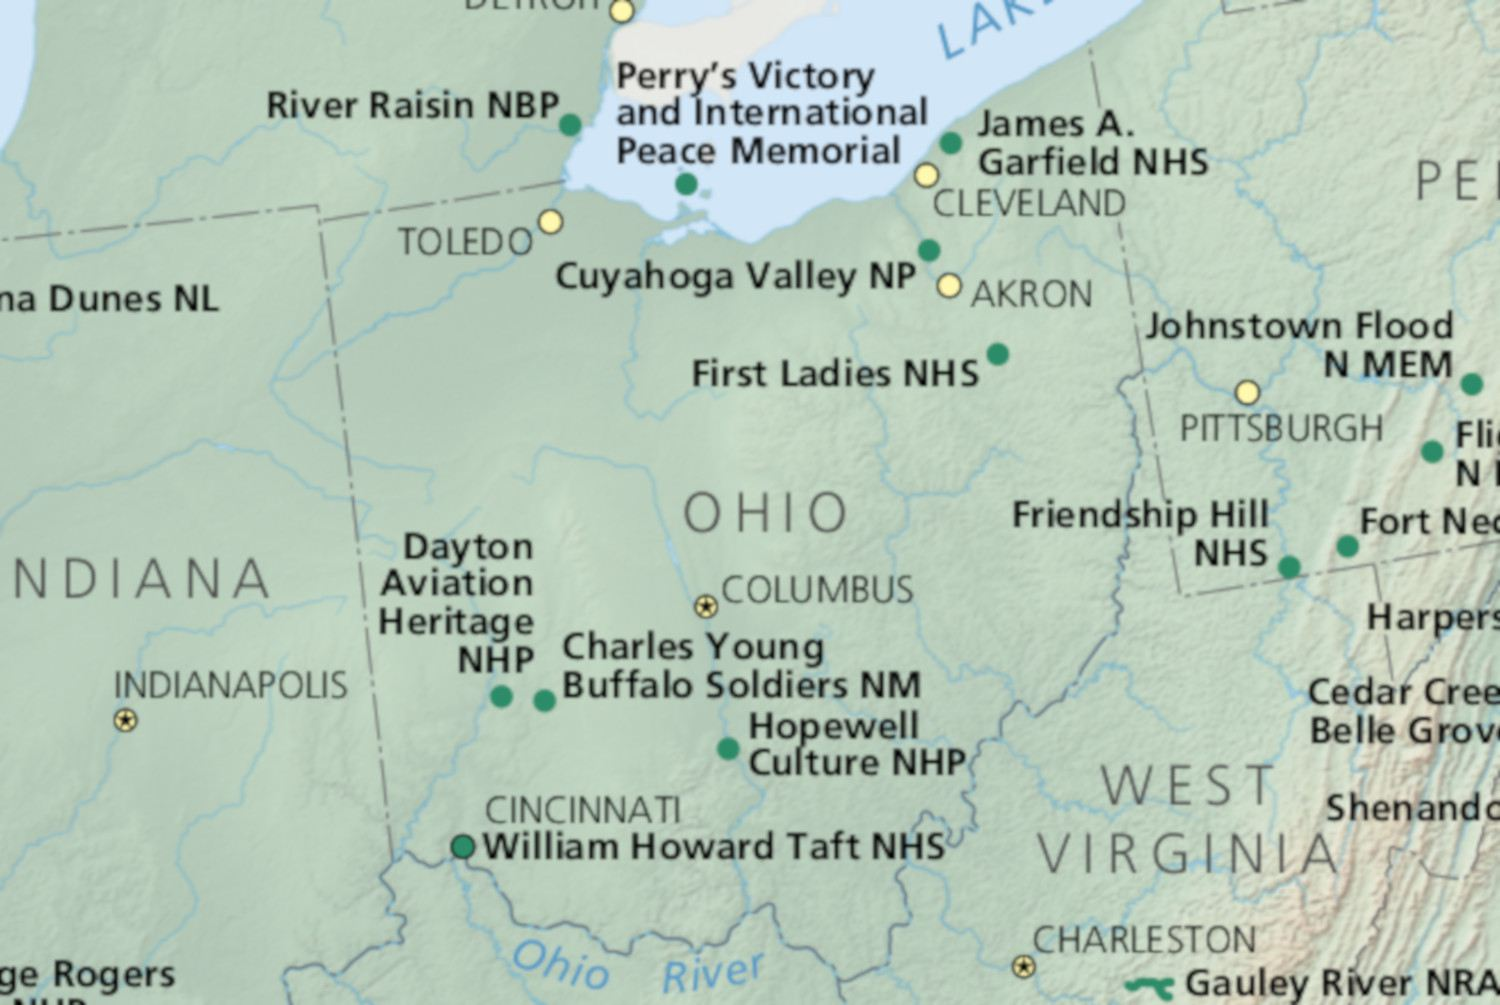 National Parks in Ohio